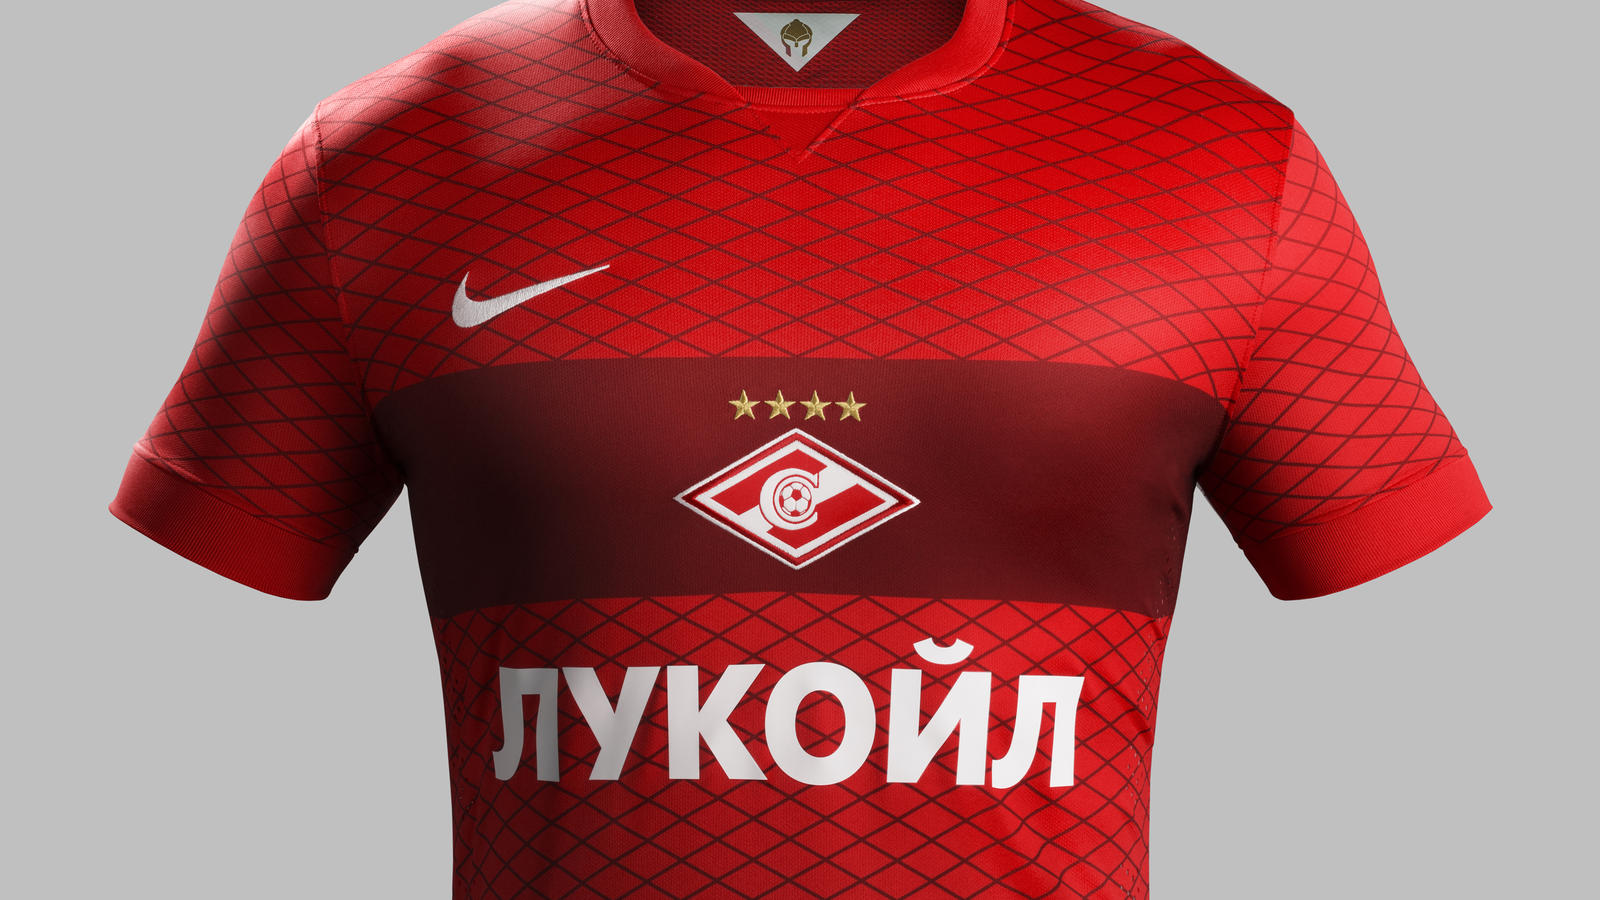 fa14_match_spartakmoscow_pr_h_front_r